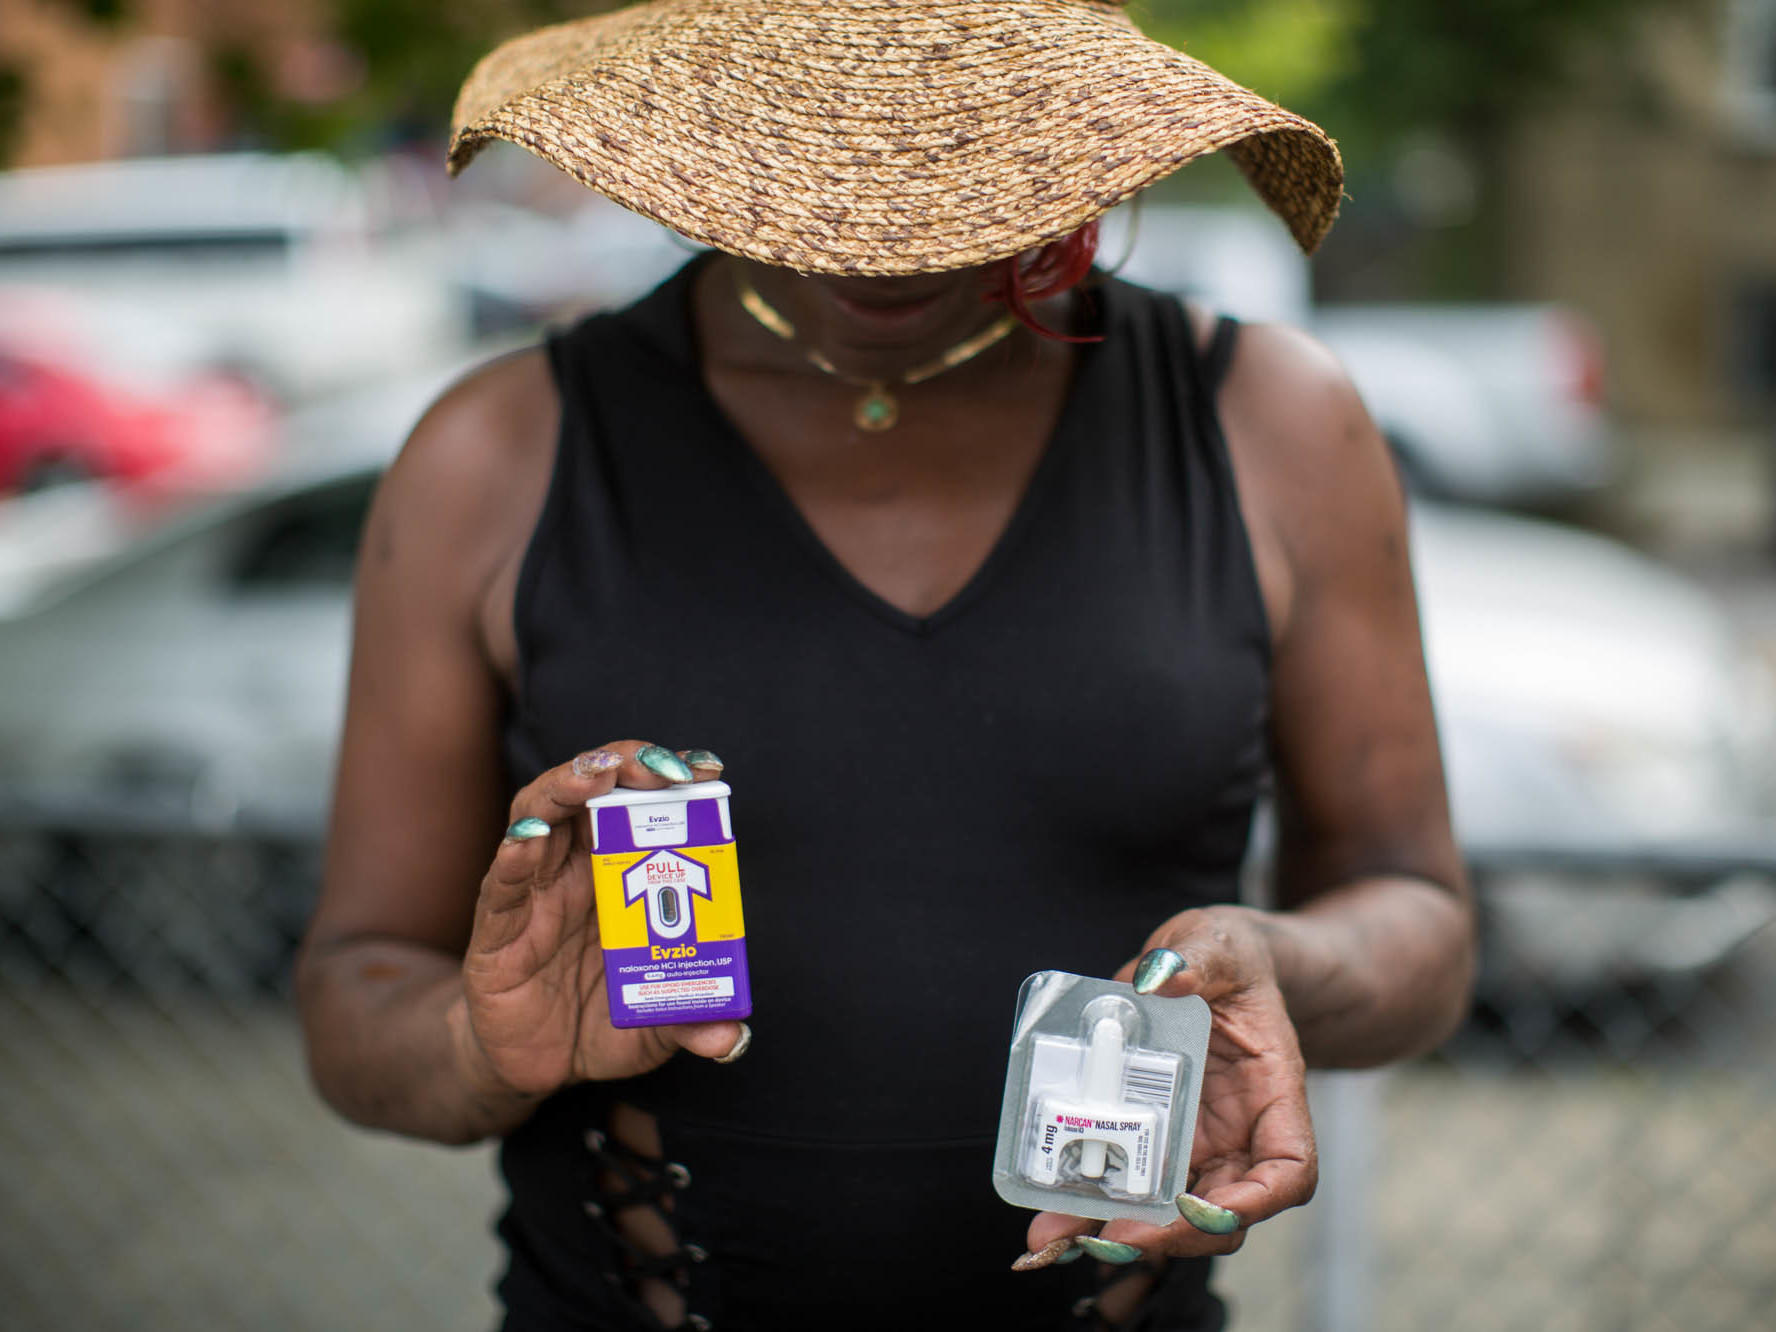 Towson Carries Two Naloxone Kits With Her At All Times And Has Used Them To  Revive People Who Overdose She Now Trains The Public On How To Use  Naloxone